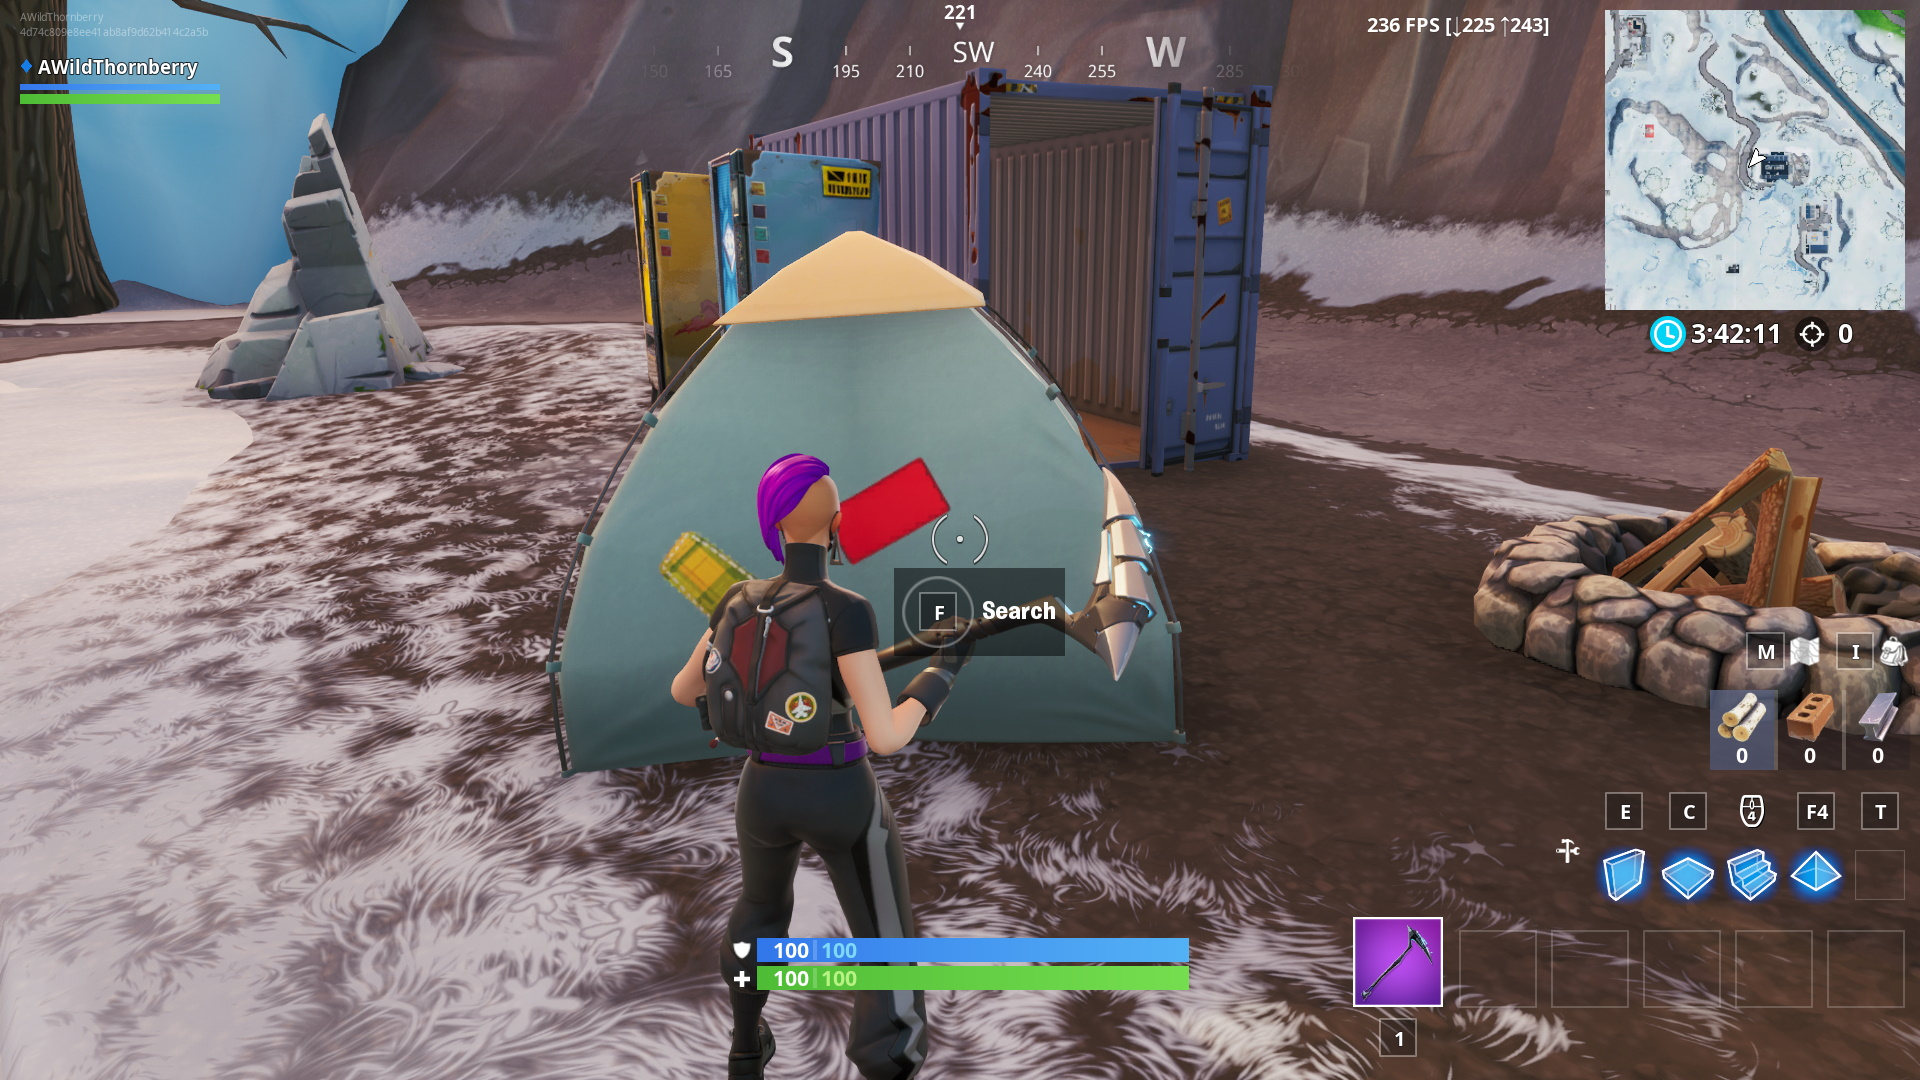 Fortnite: All Lost Spray Can locations - Metabomb